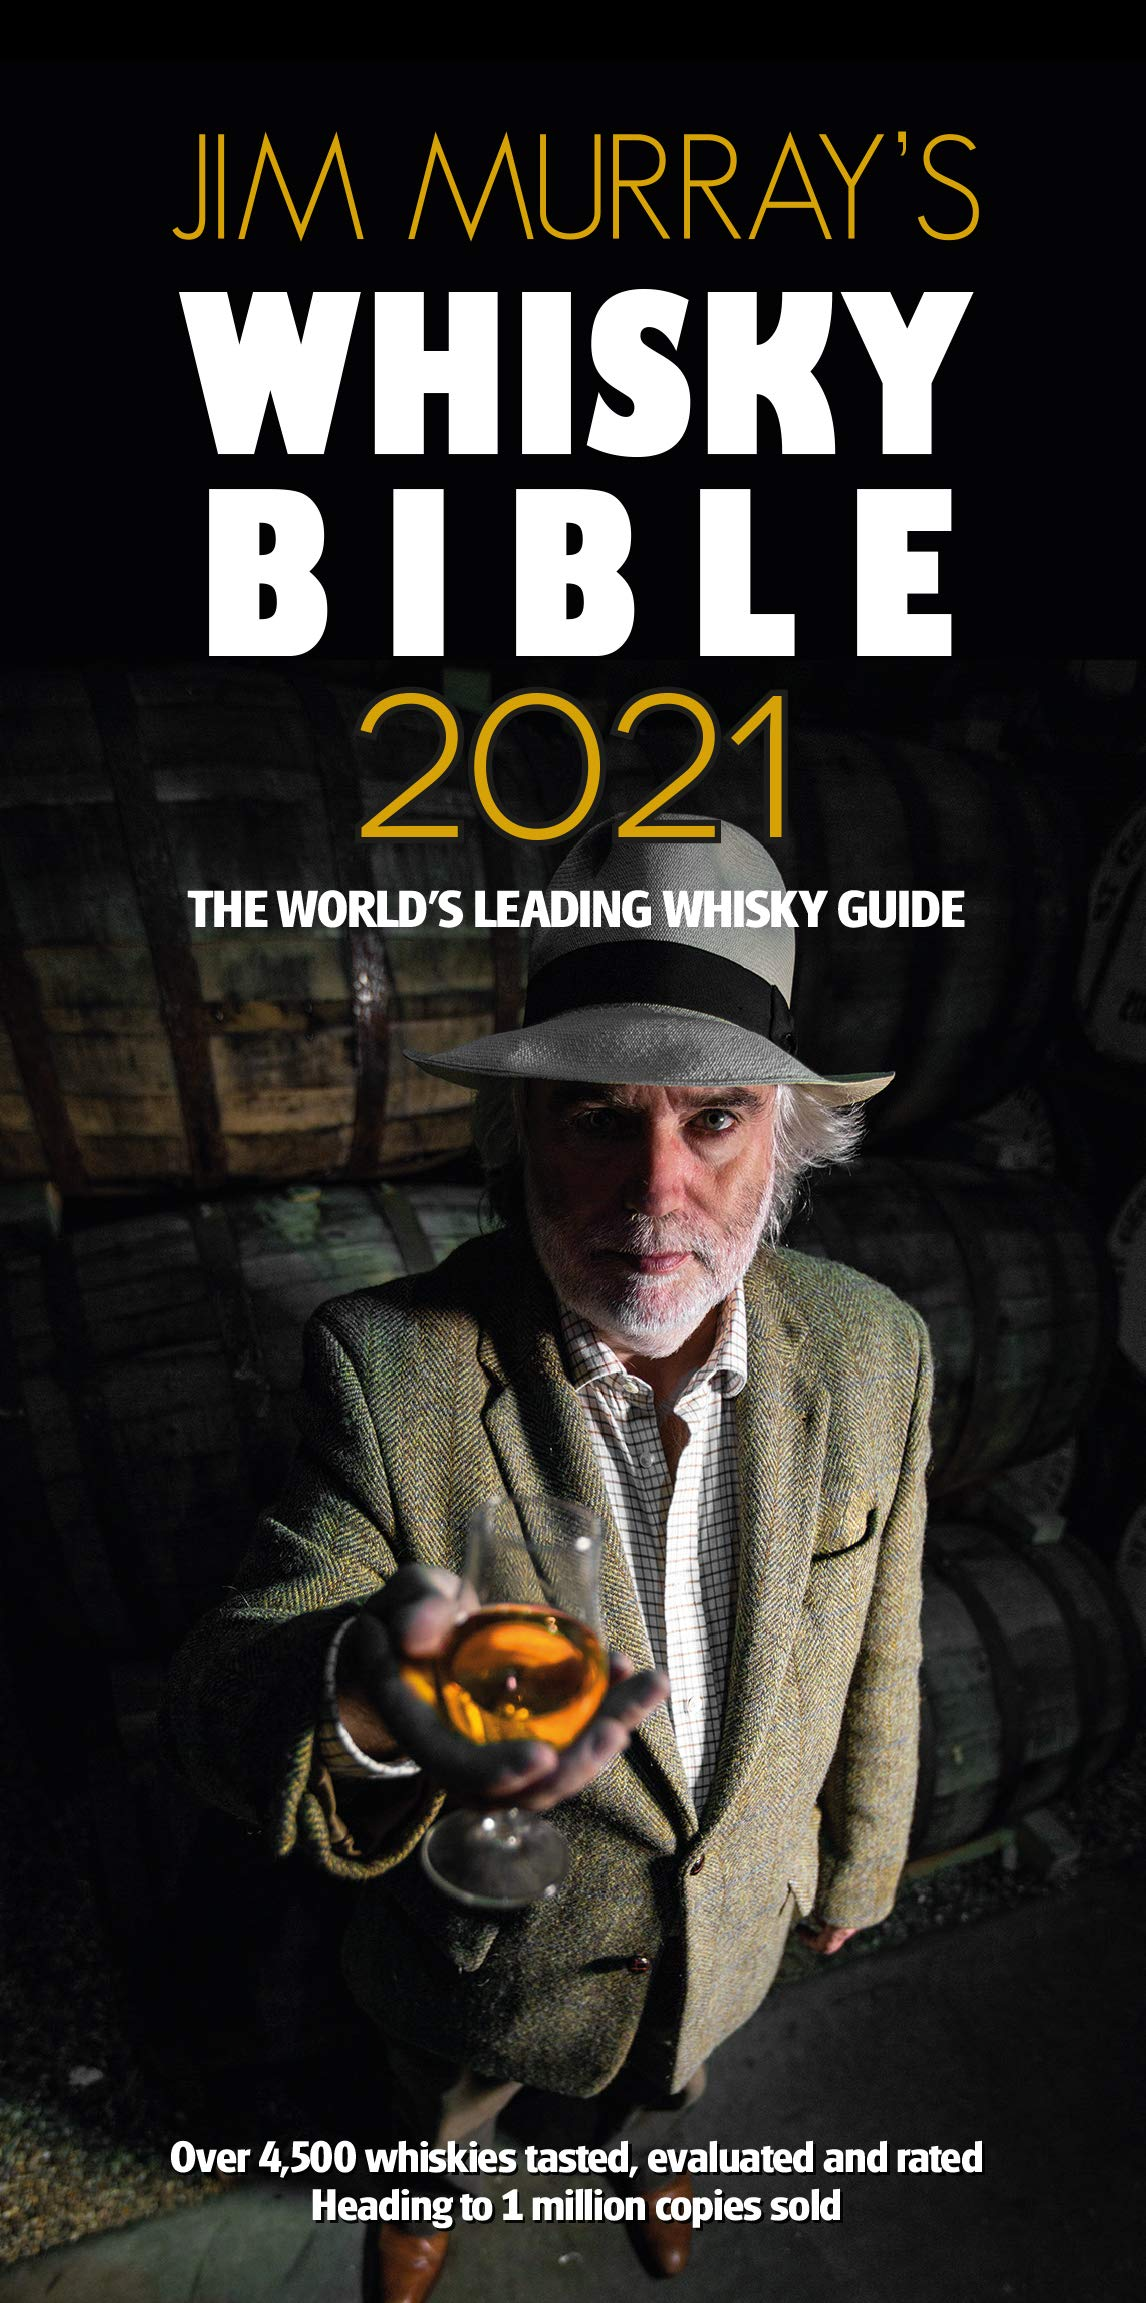 Jim Murray's Whisky Bible 2021 2021: Rest Of World Edition